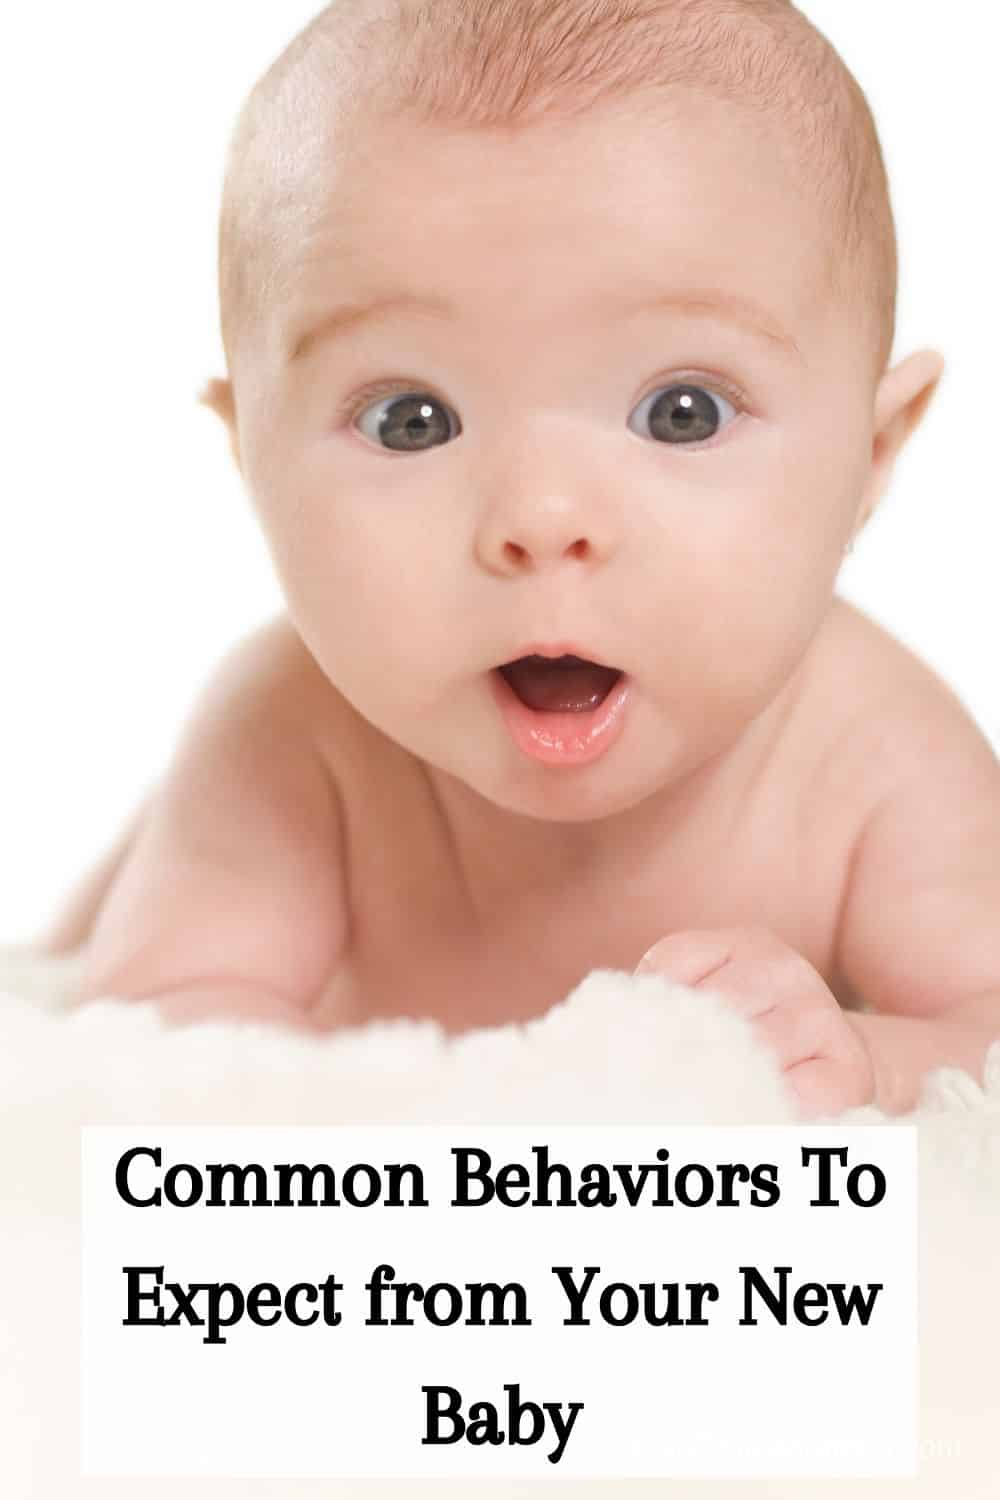 Common Behaviors To Expect from Your New Baby